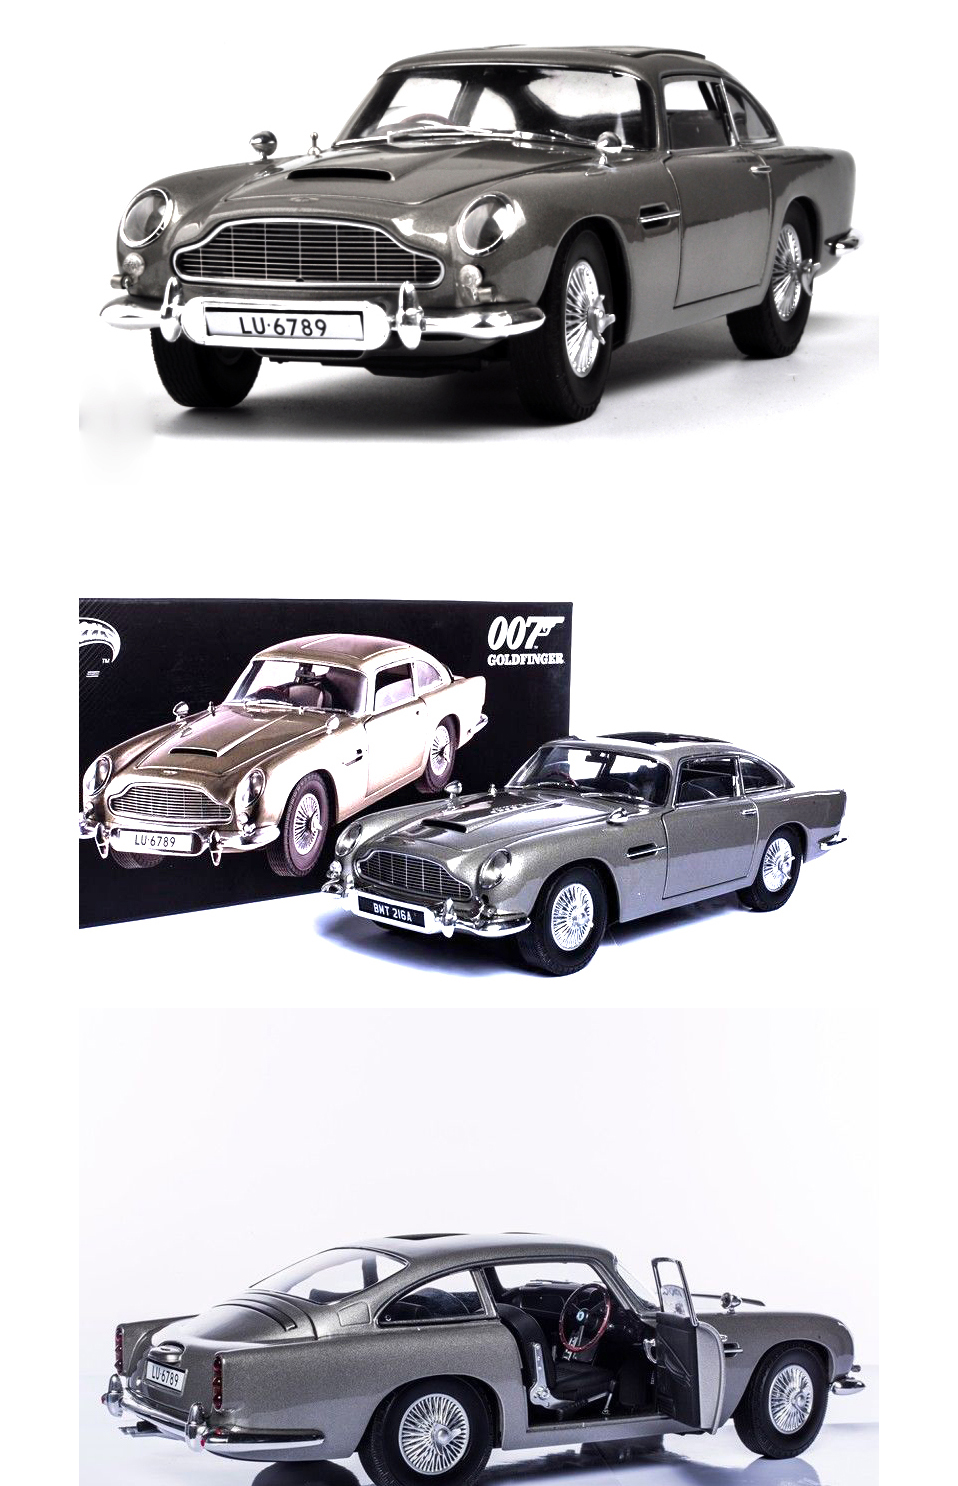 1 18 scale car models 2-4 Years james bond 007 collectables Aston Matin DB5 Diecasts & Toy Vehicles Model Toys For Gifts (7)